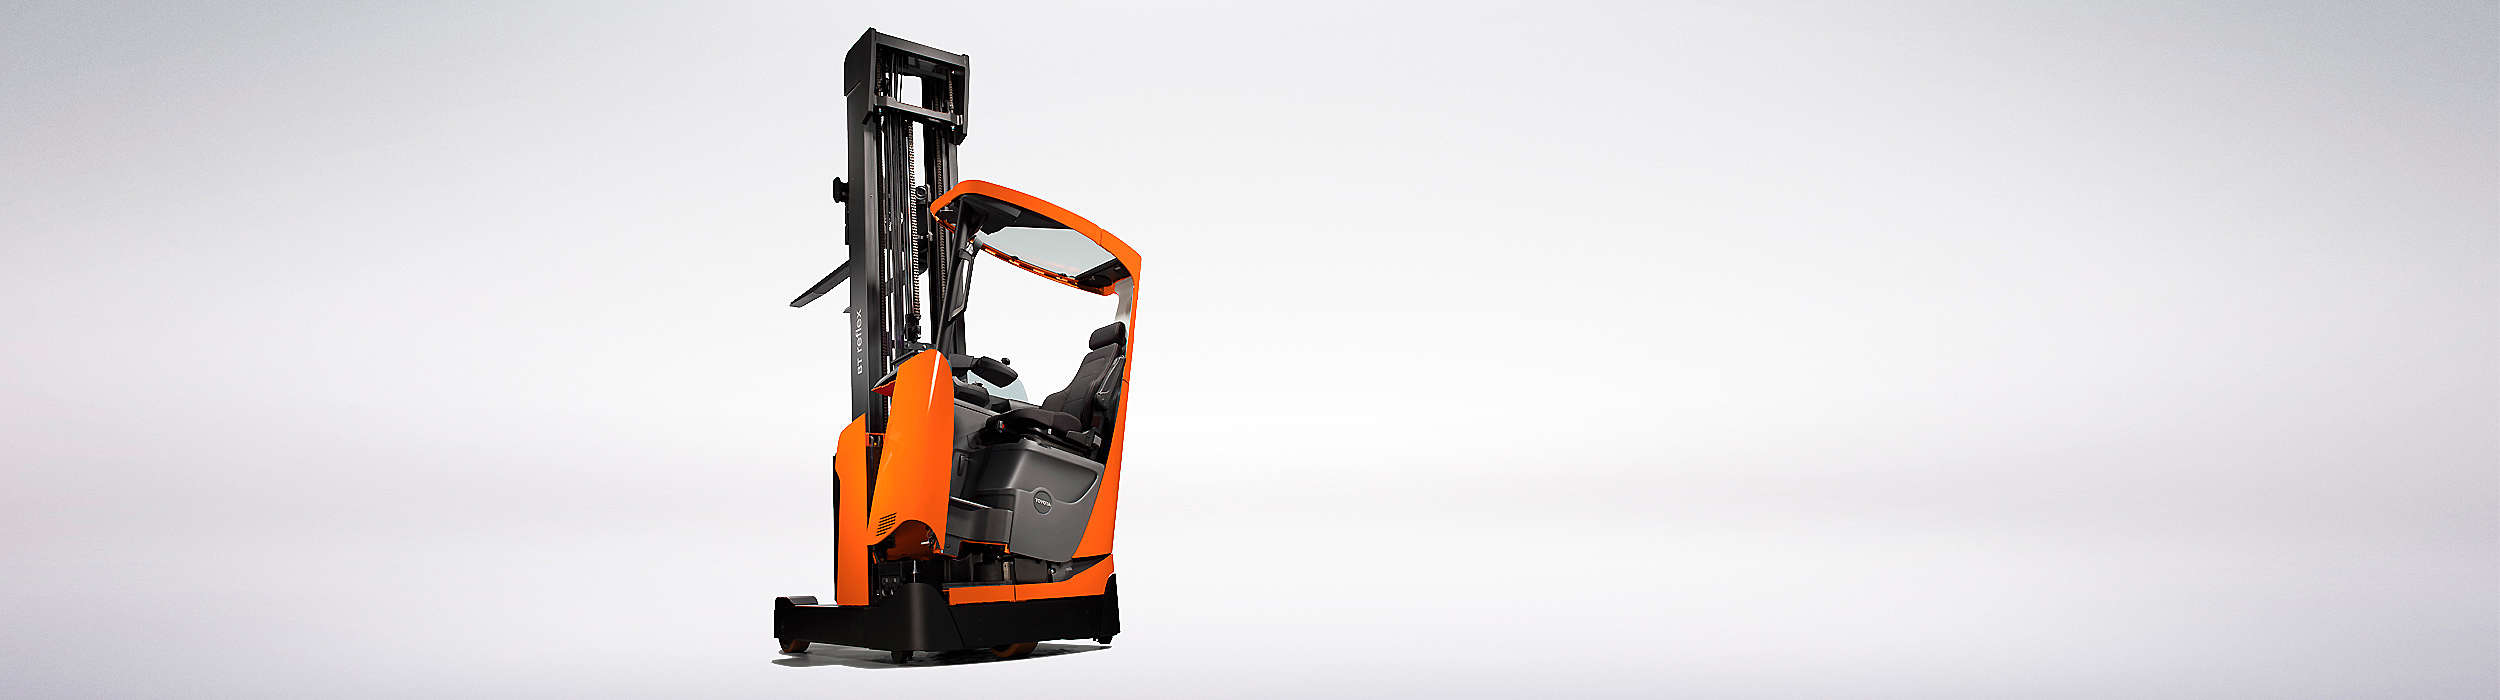 The BT Reflex E-series with unique tilting cab for ultimate driver comfort.